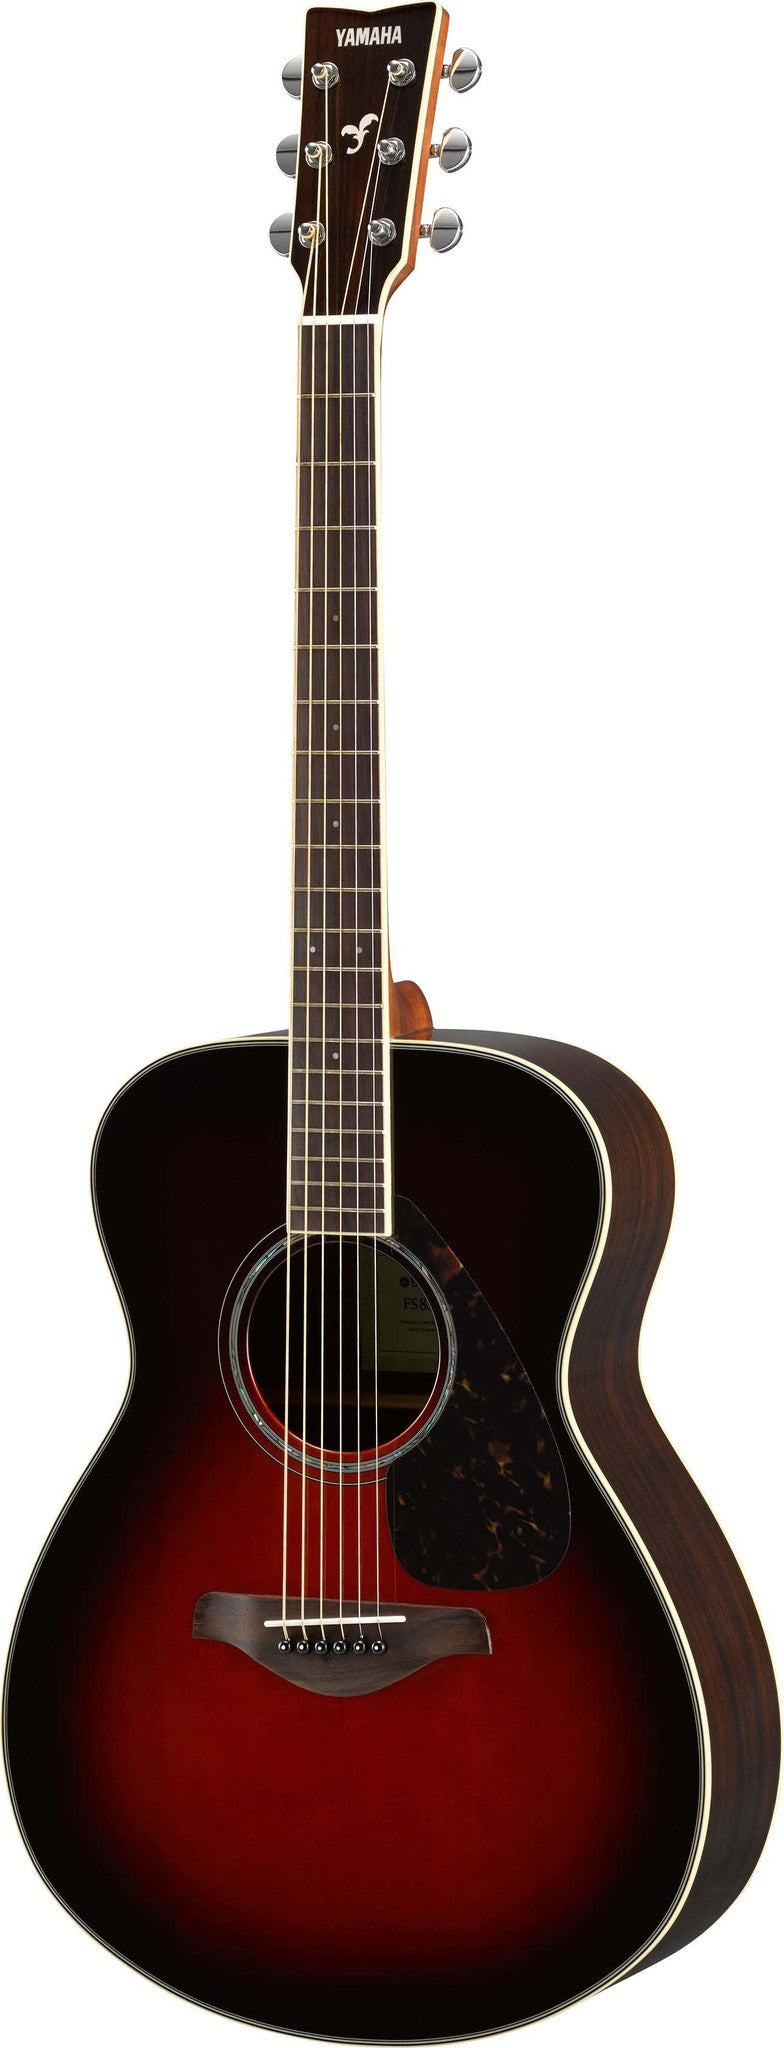 Yamaha FS830TBS Small Body Acoustic Guitar Bundle